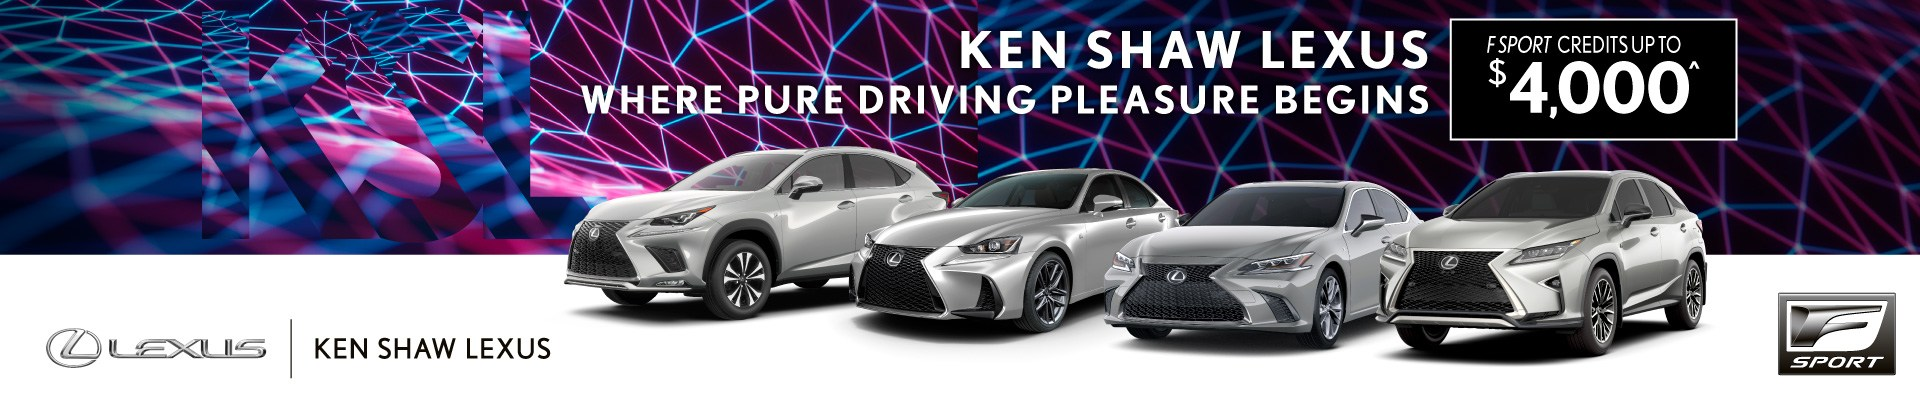 NEW F SPORT LEXUS 2019 available at Ken Shaw Lexus Toronto Ontario GTA